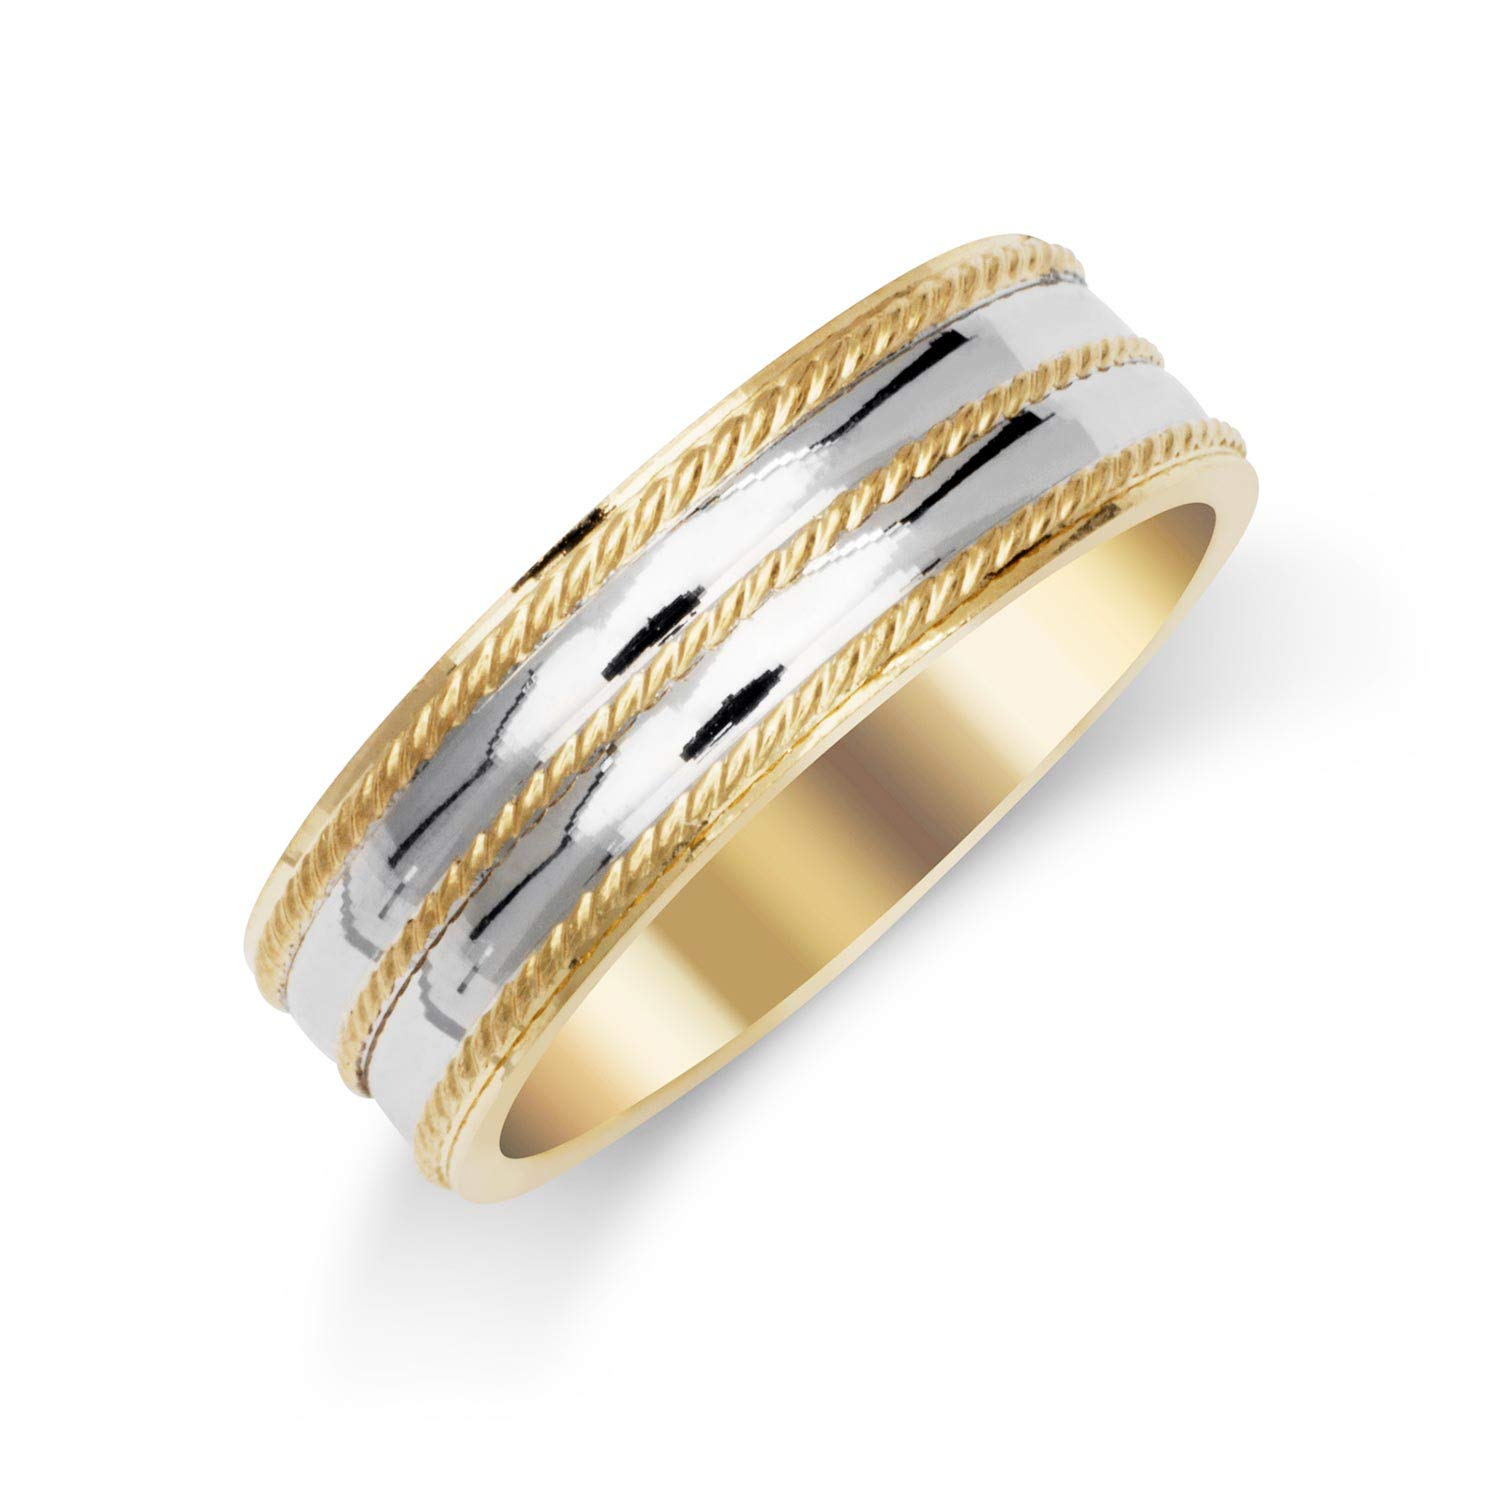 Iptnyc Two Tone Solid 14k Gold 63mm Twisted Polished Finish Mens Wedding Band Ring Diamond Nature Amazon: Twisted Two Tone Wedding Bands At Websimilar.org